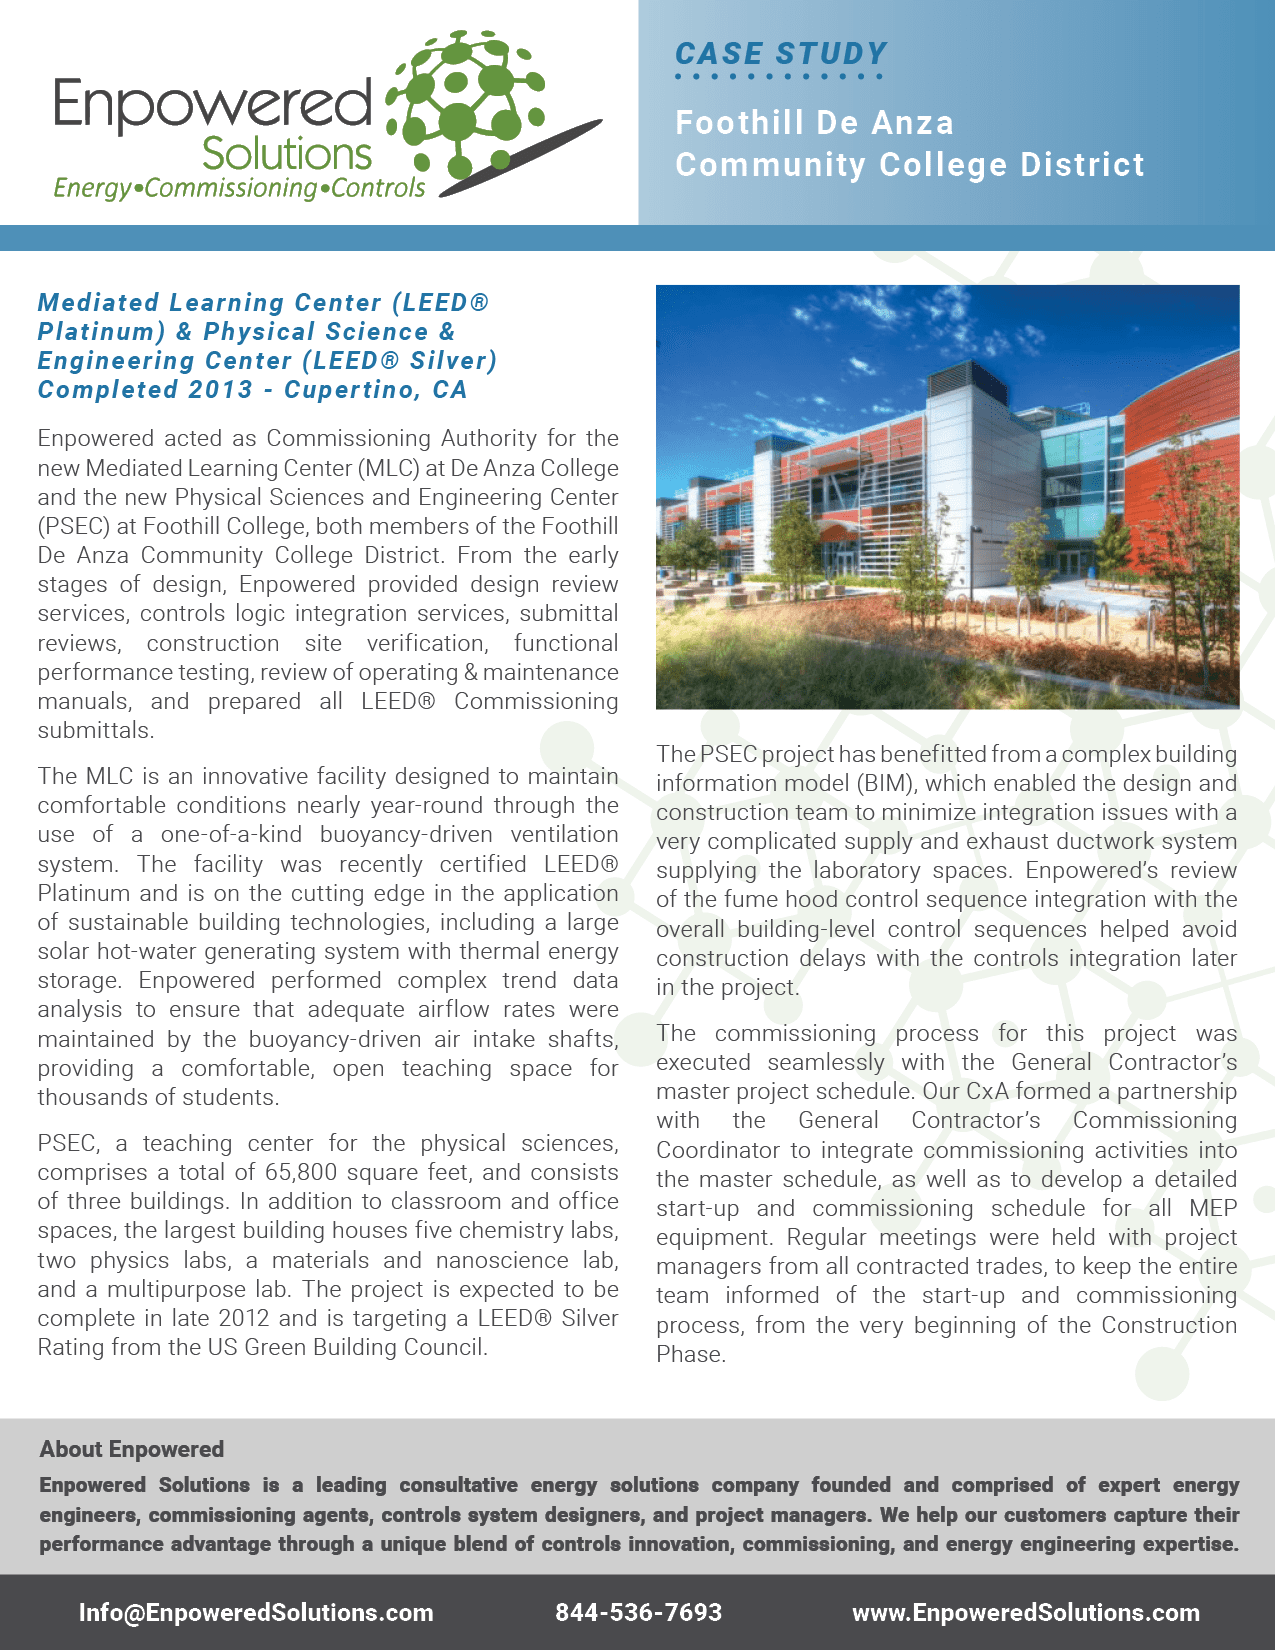 Preview of Enpowered Solutions Case Study - Foothill De Anza Community College